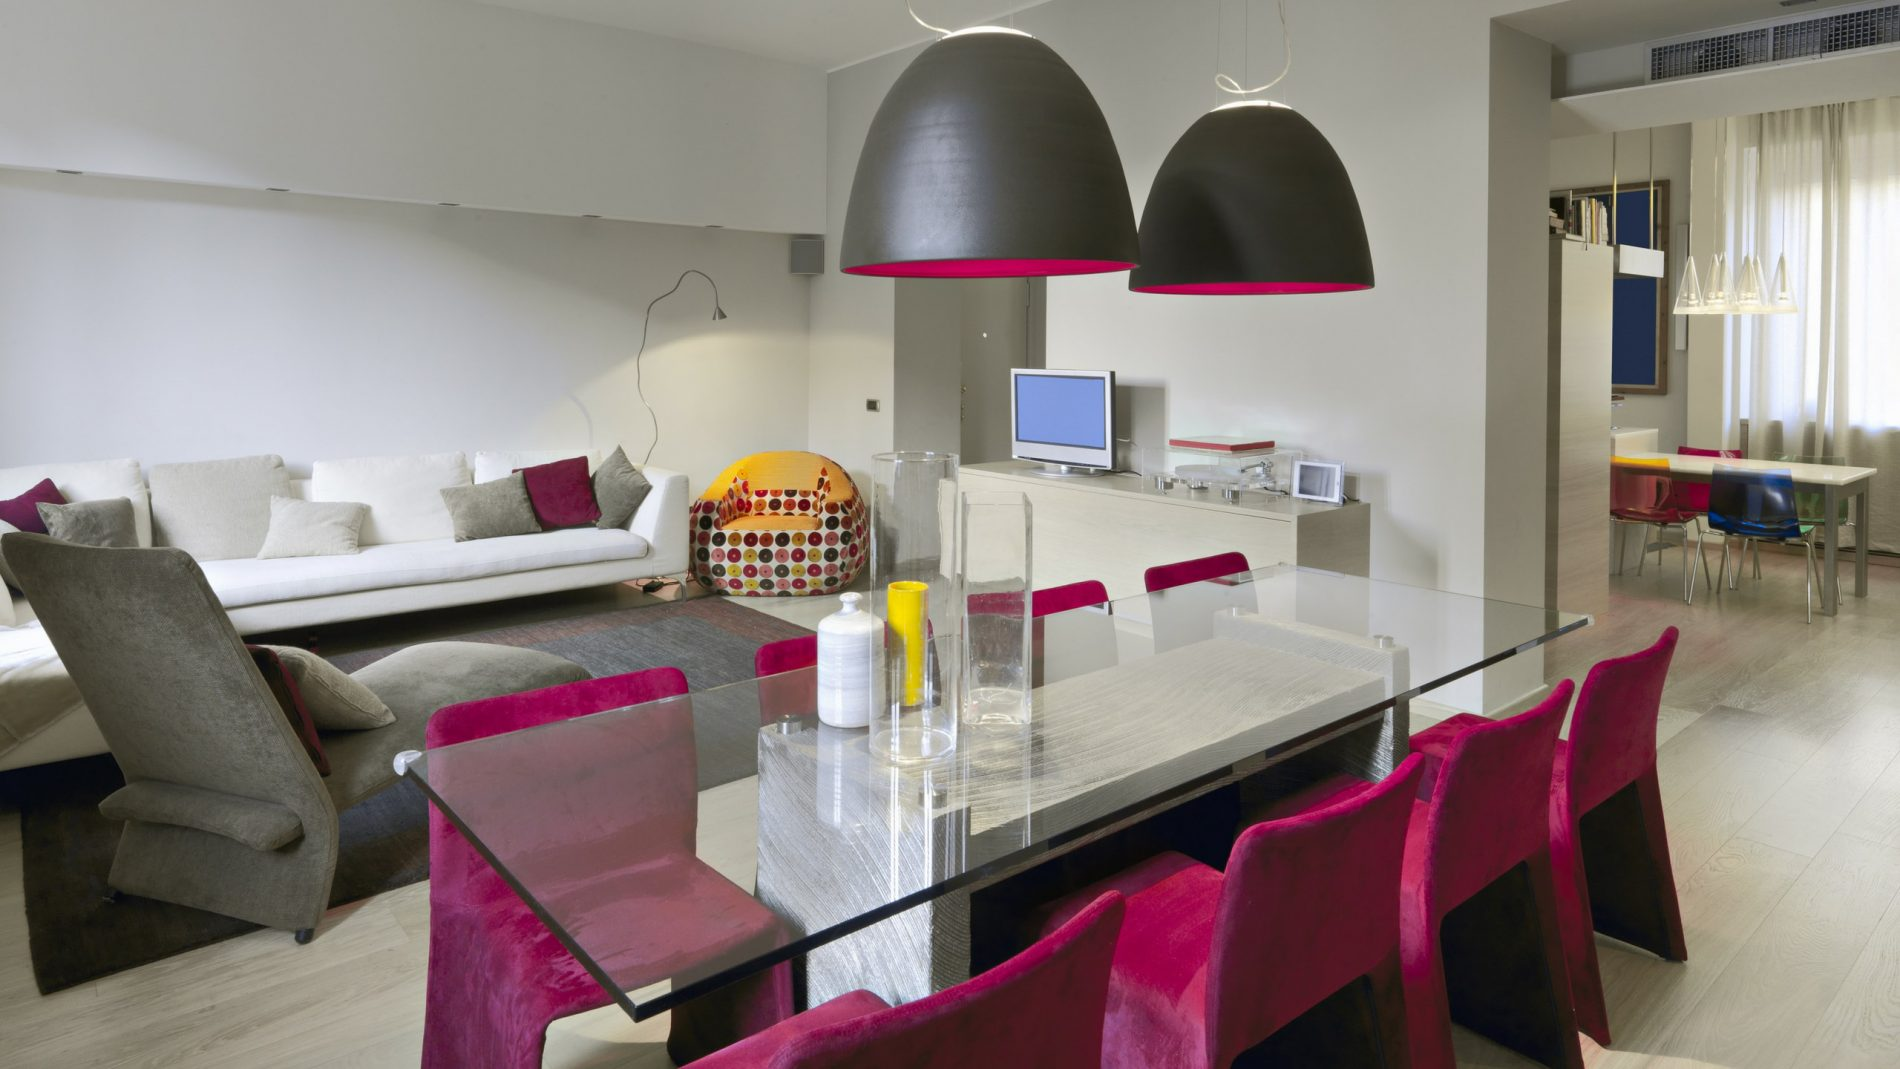 Glass Dining Table with 6 Chairs In A Modern Home